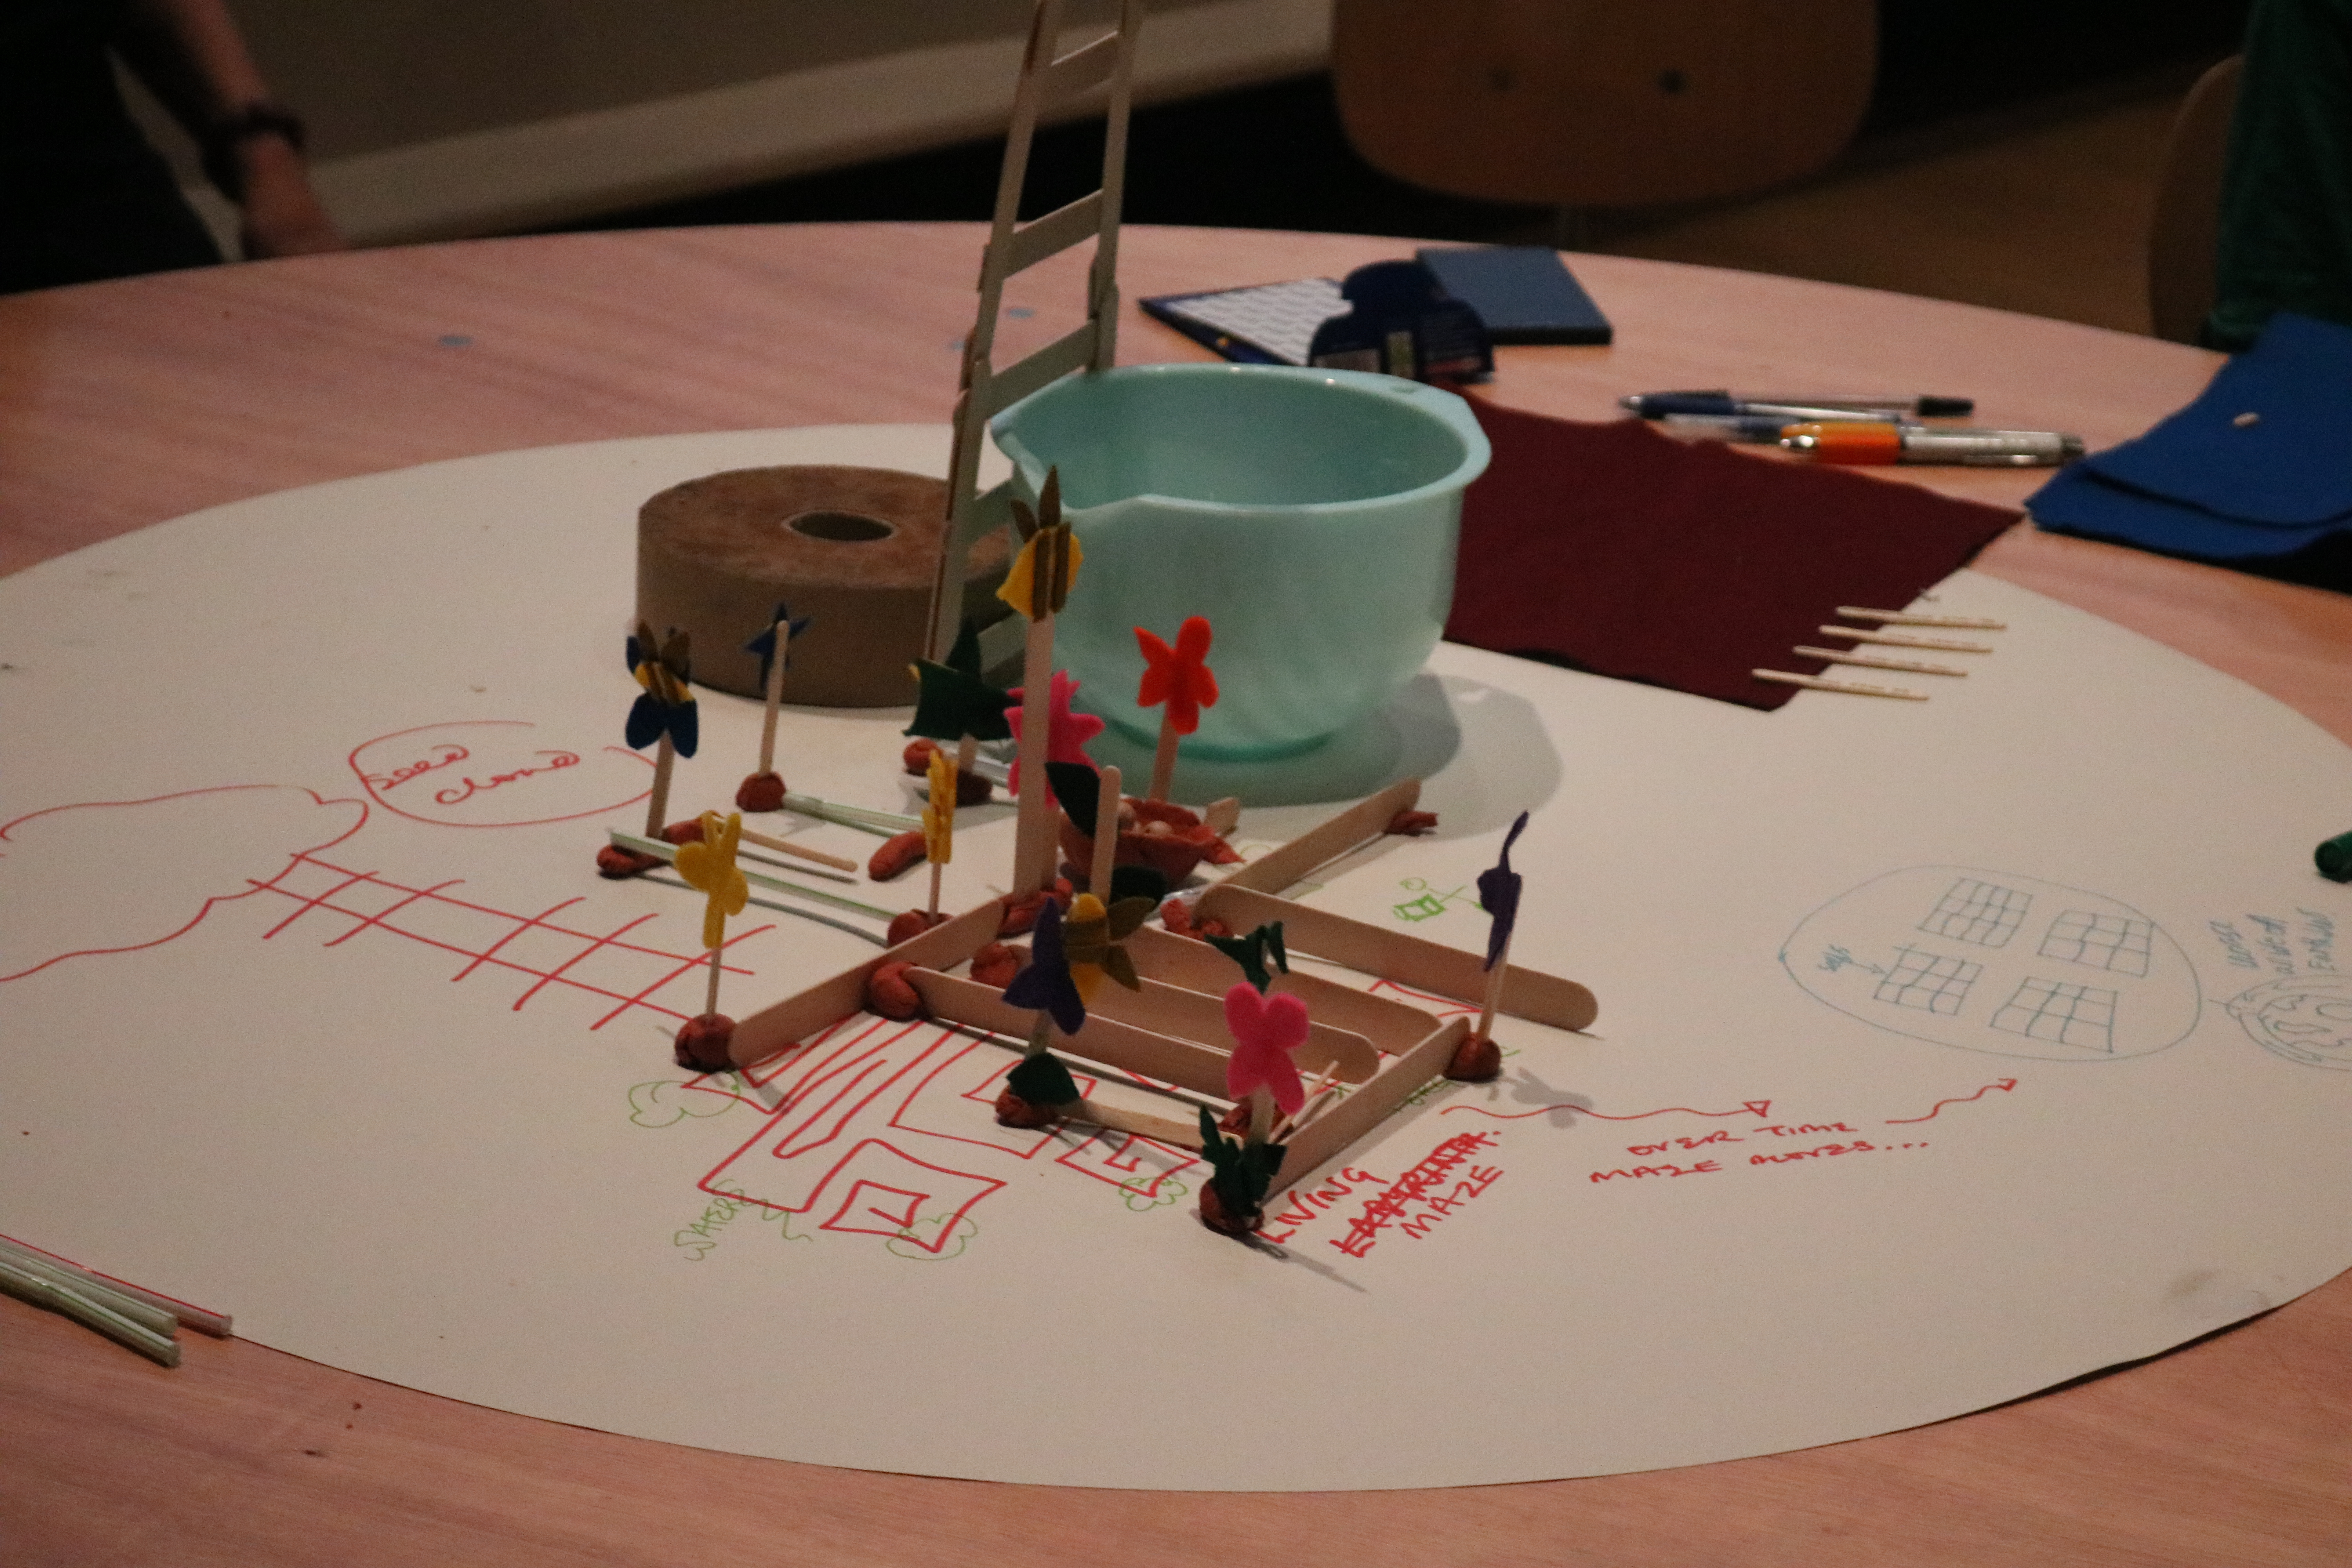 model of the living maze, ladder and requests for food